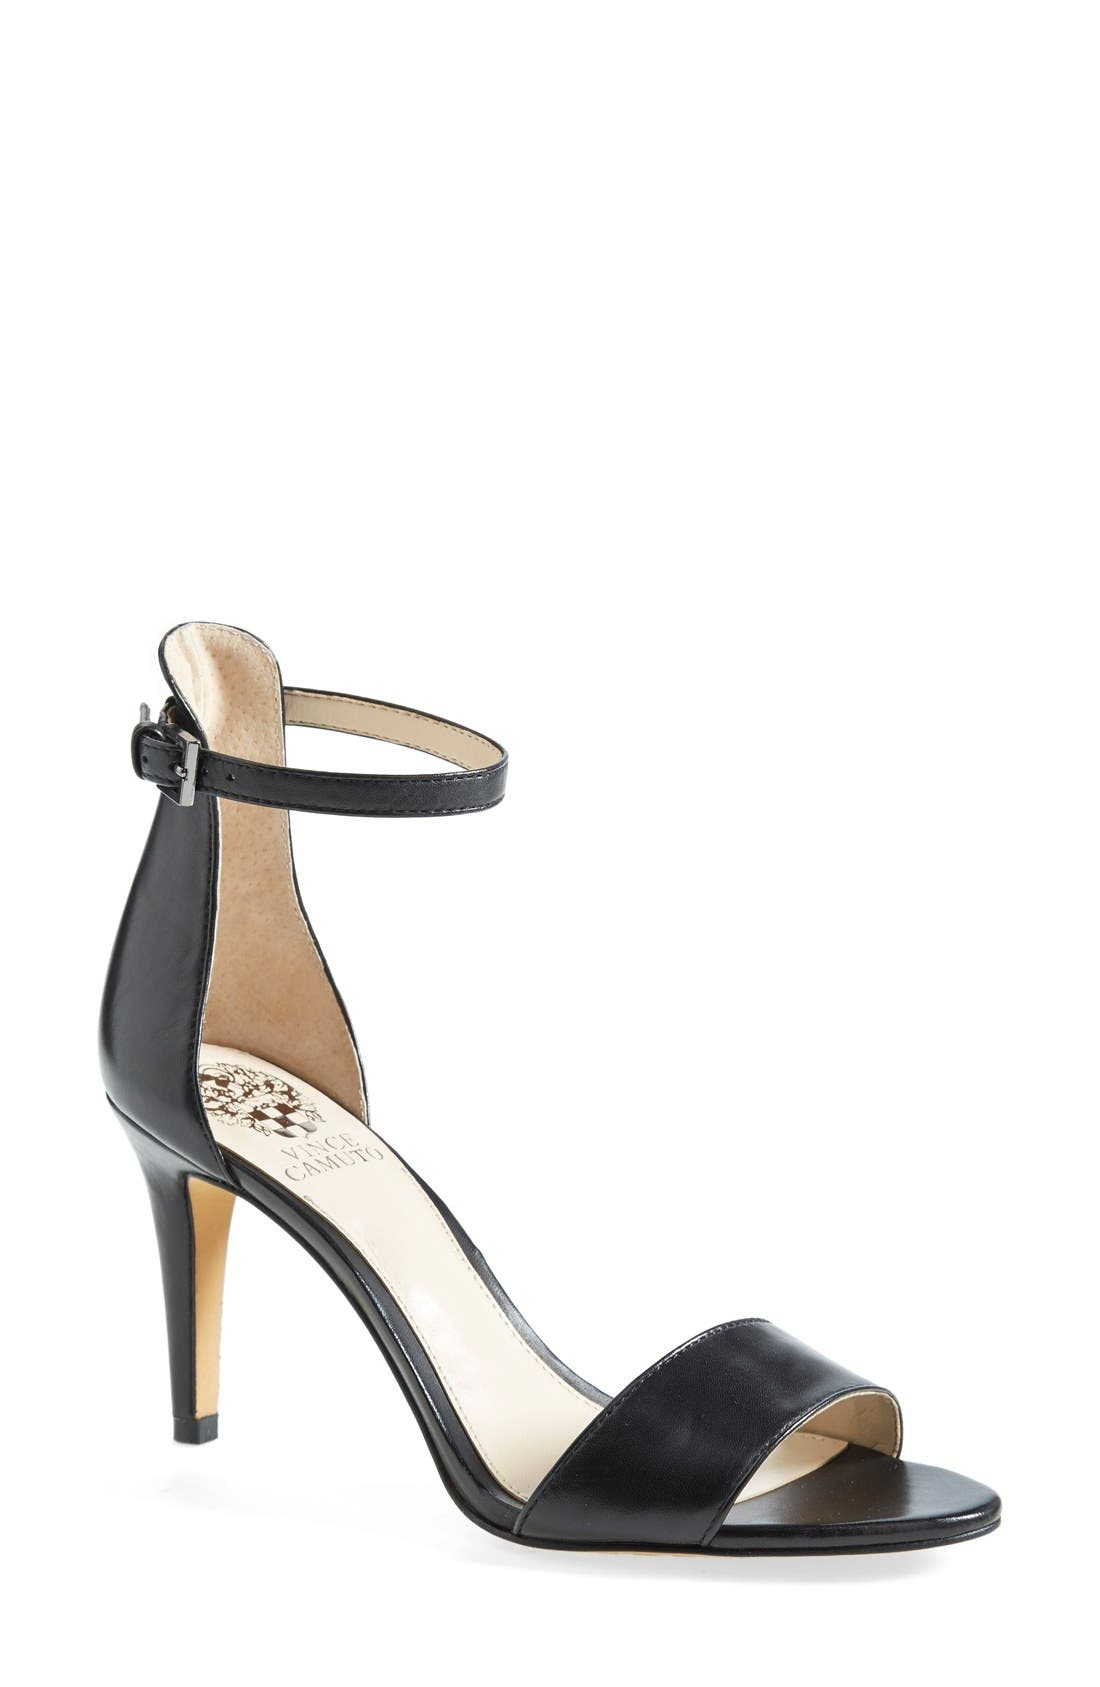 Main Image - Vince Camuto 'Court' Ankle Strap Sandal (Women)